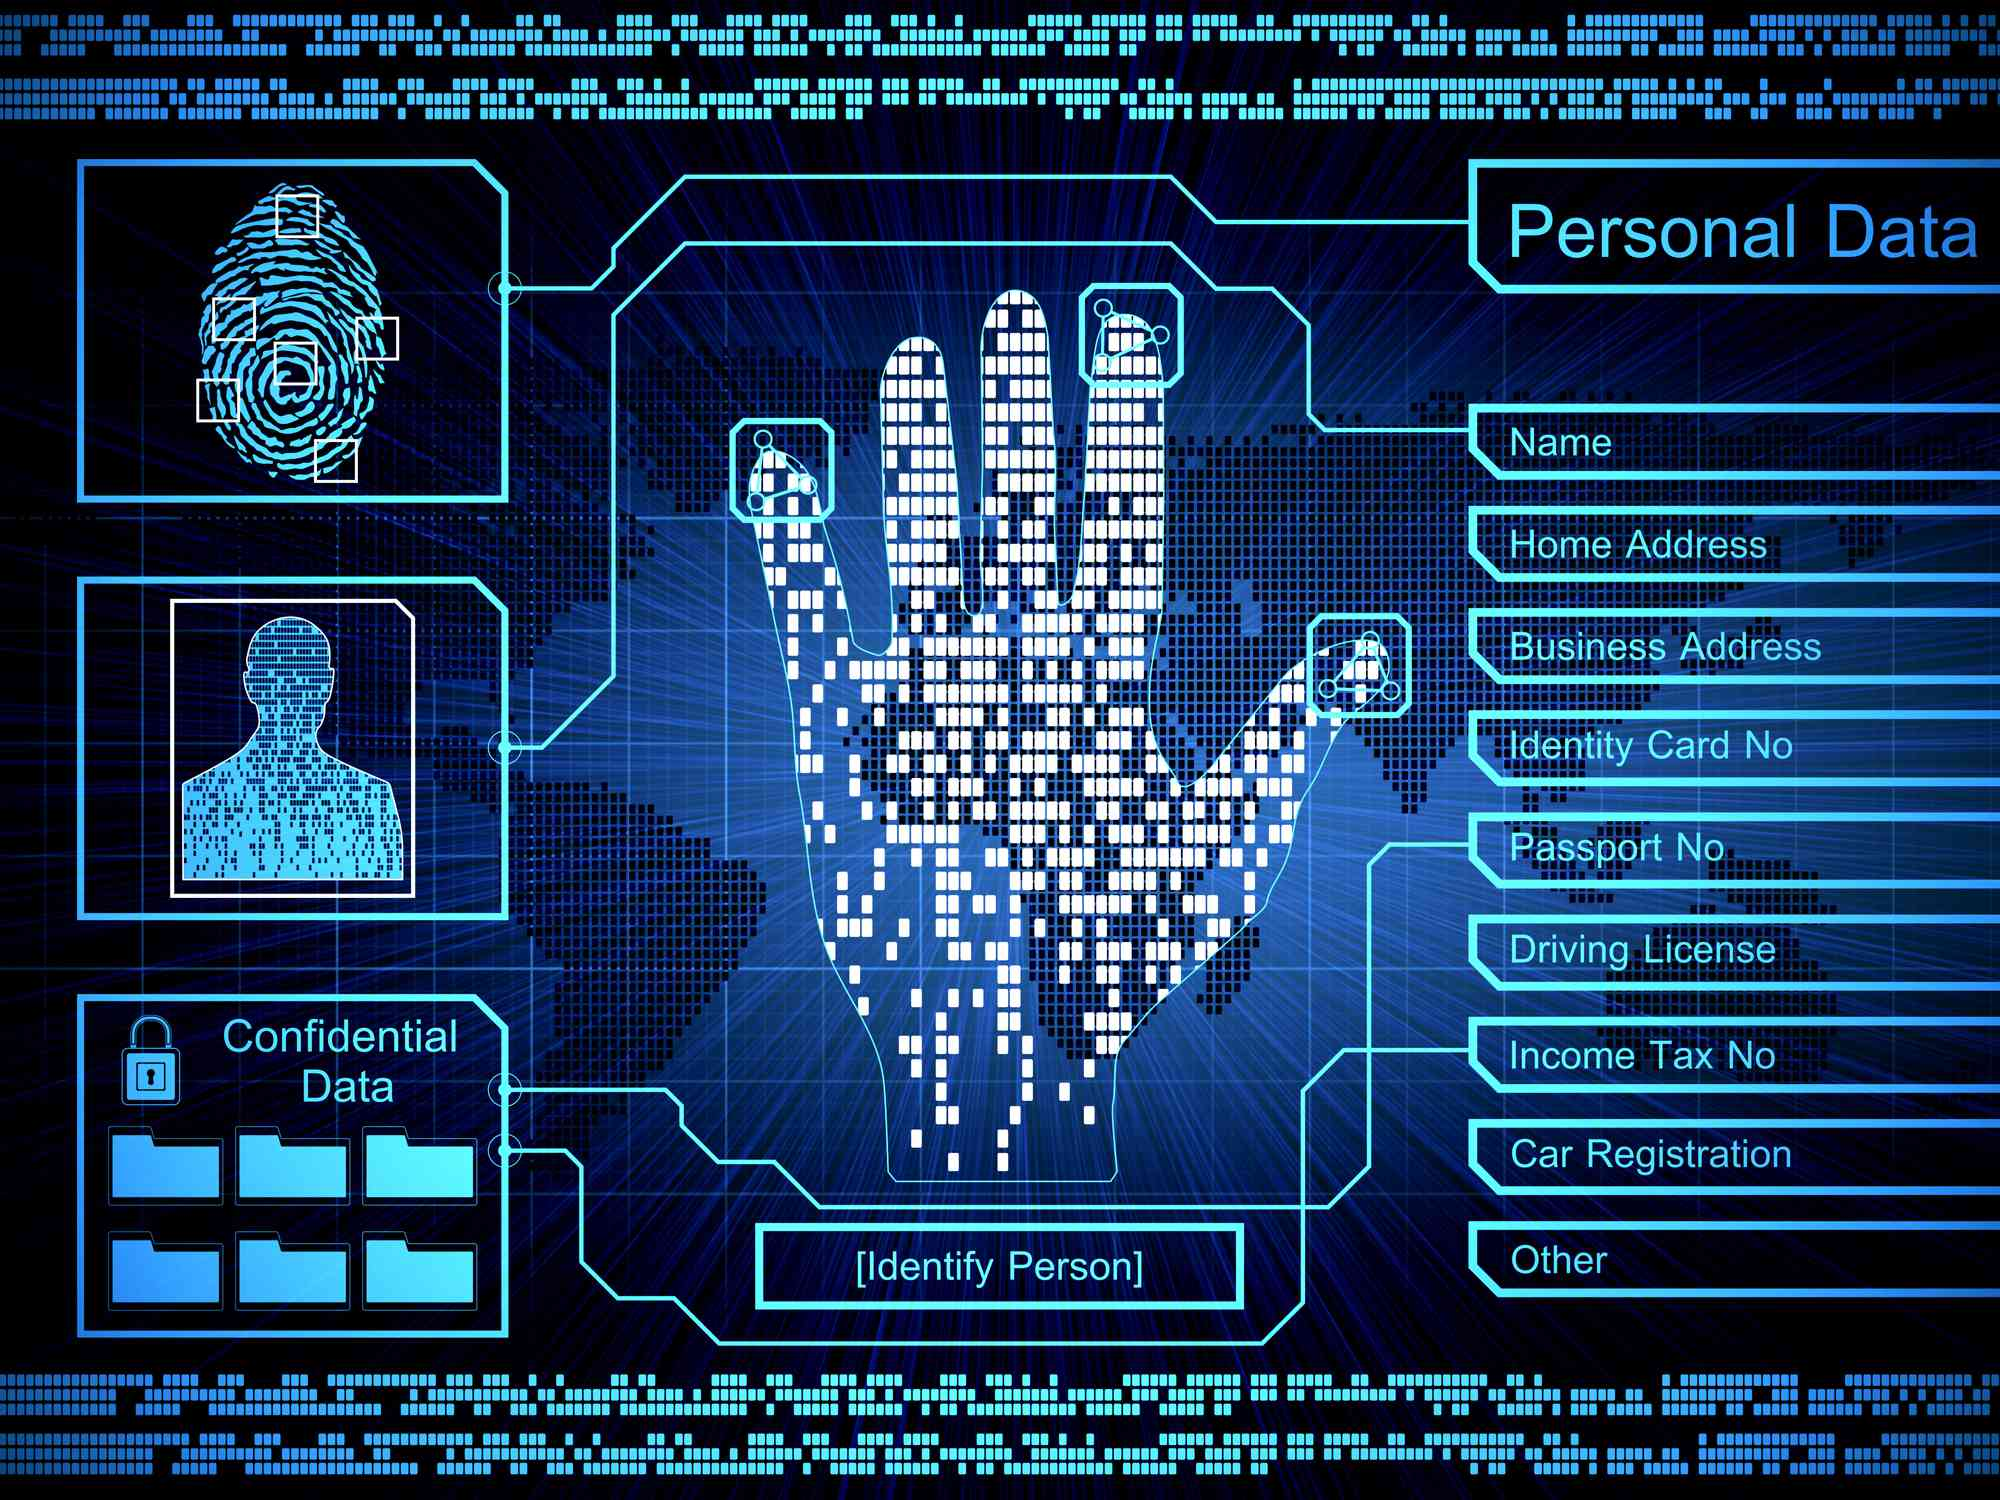 A security concept image showing the collection of personal information, including biometric data.